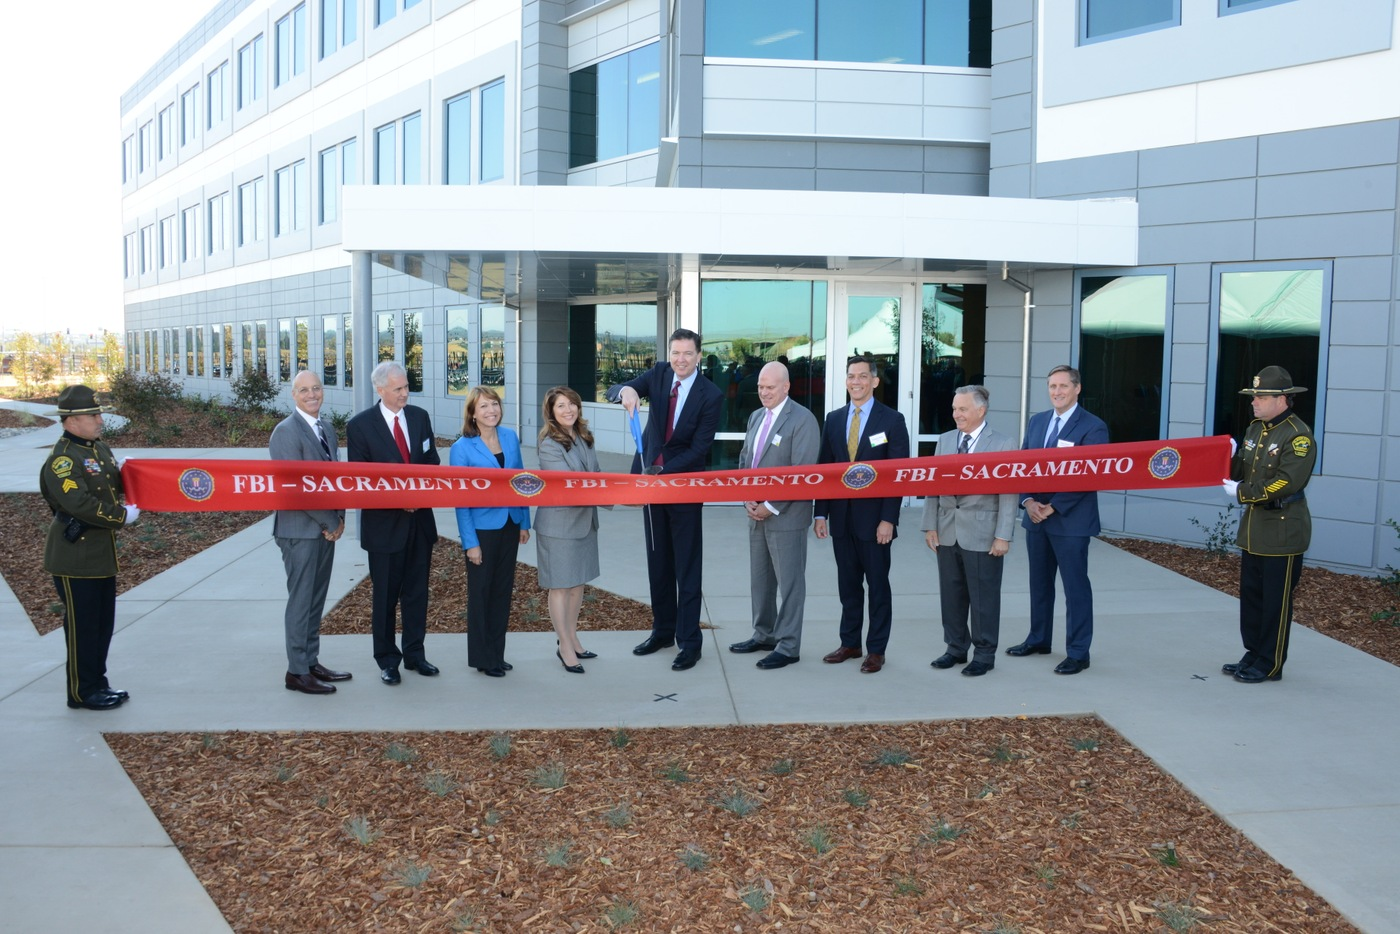 The Sacramento Field Office of the FBI hosted an opening ceremony and ribbon cutting to officially debut the field office's new headquarters facility in Roseville on October 11, 2016.